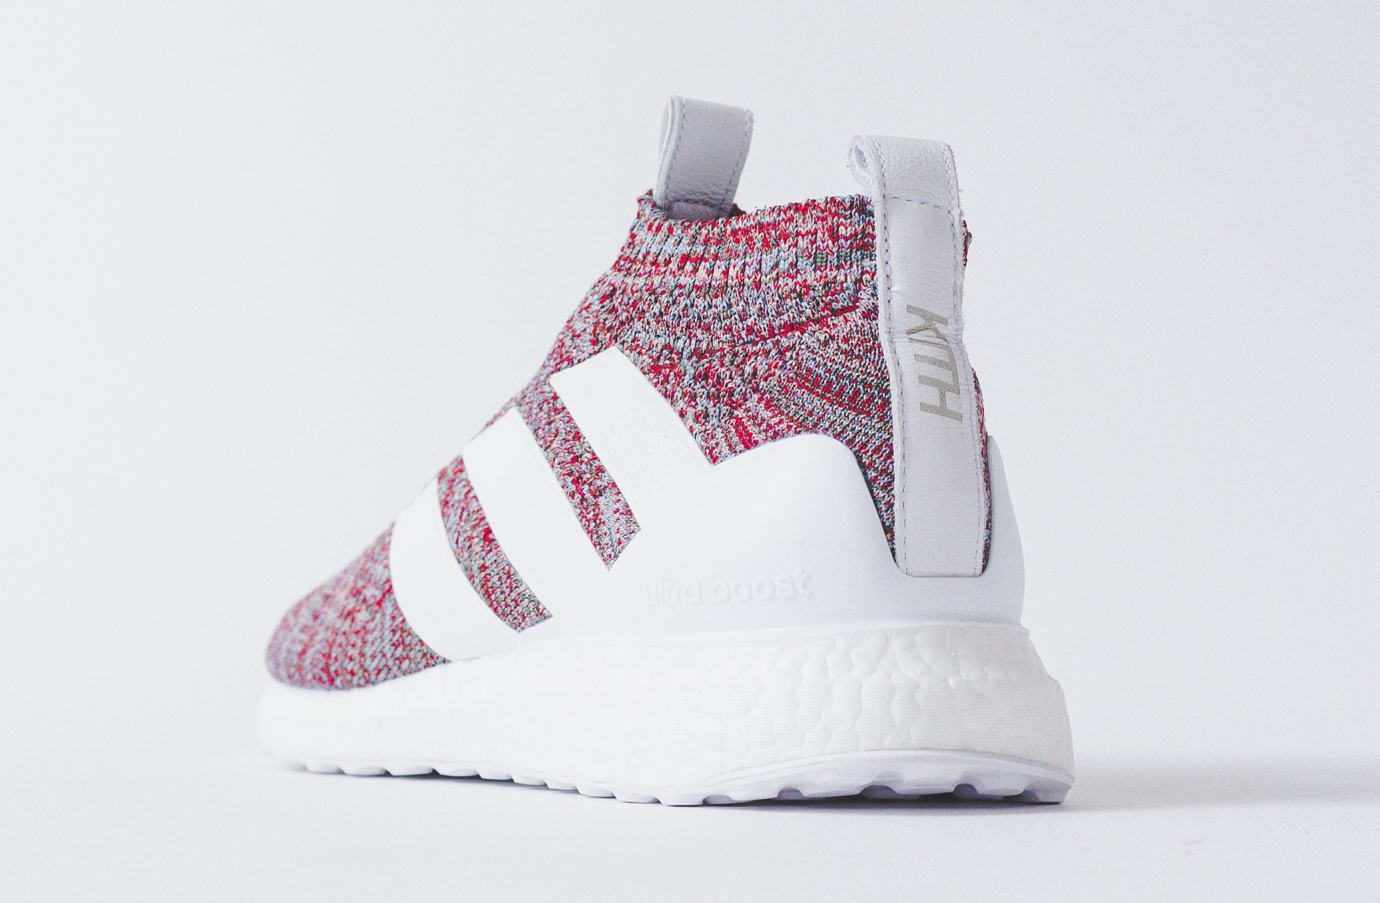 Kith x Adidas Soccer Ace 16+ Purecontrol Ultra Boost (Heel)